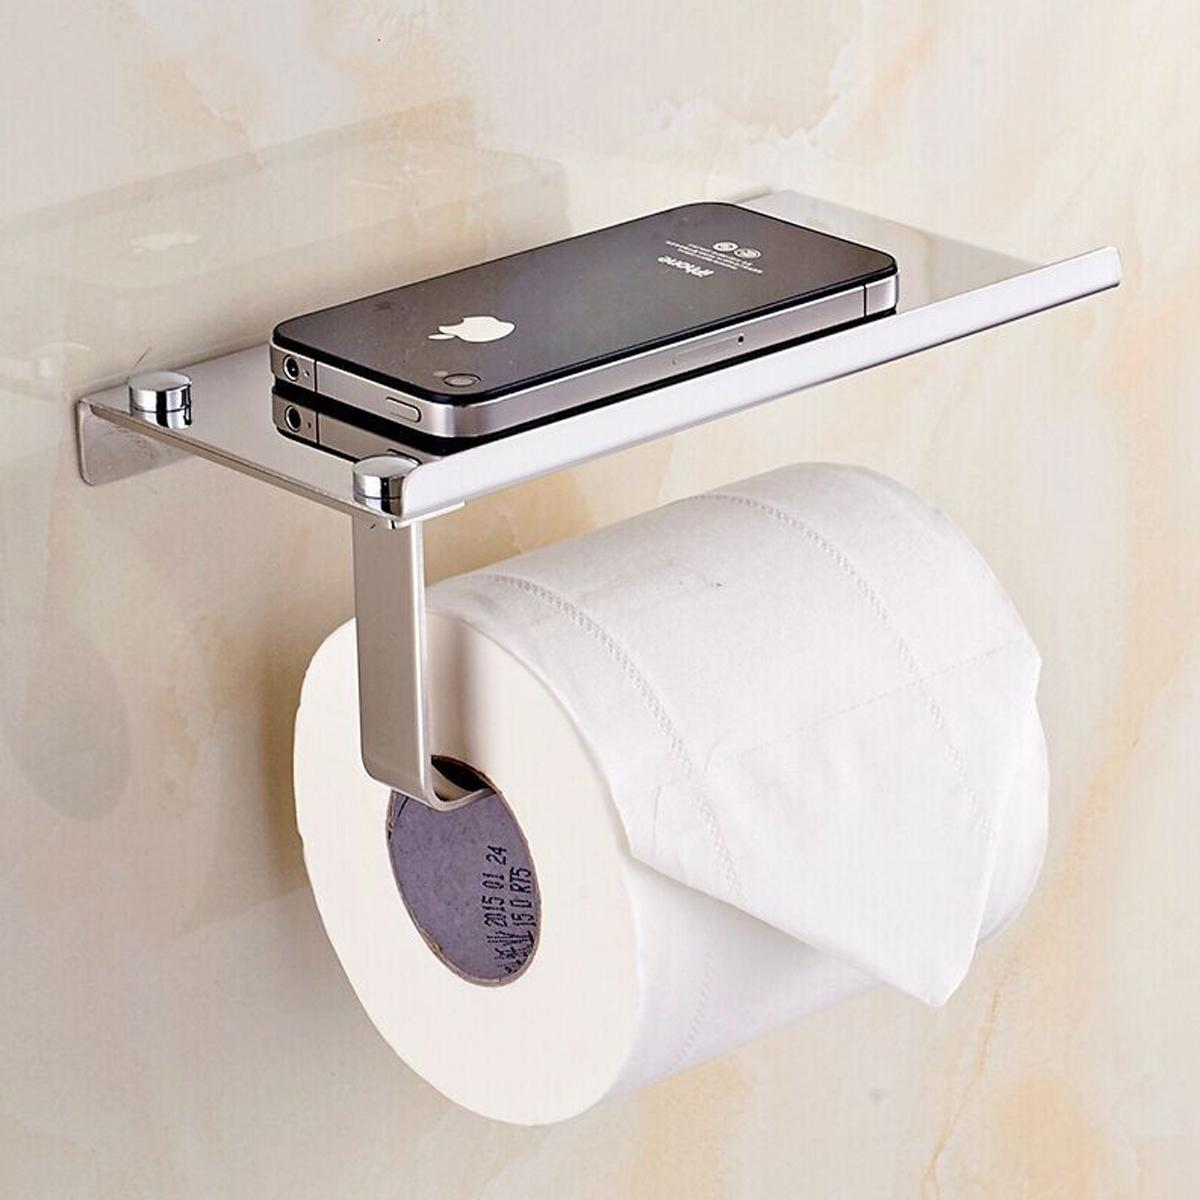 steel shelf wall towel stainless bathroom online mount product tissue roll organizer holder store cellphone paper